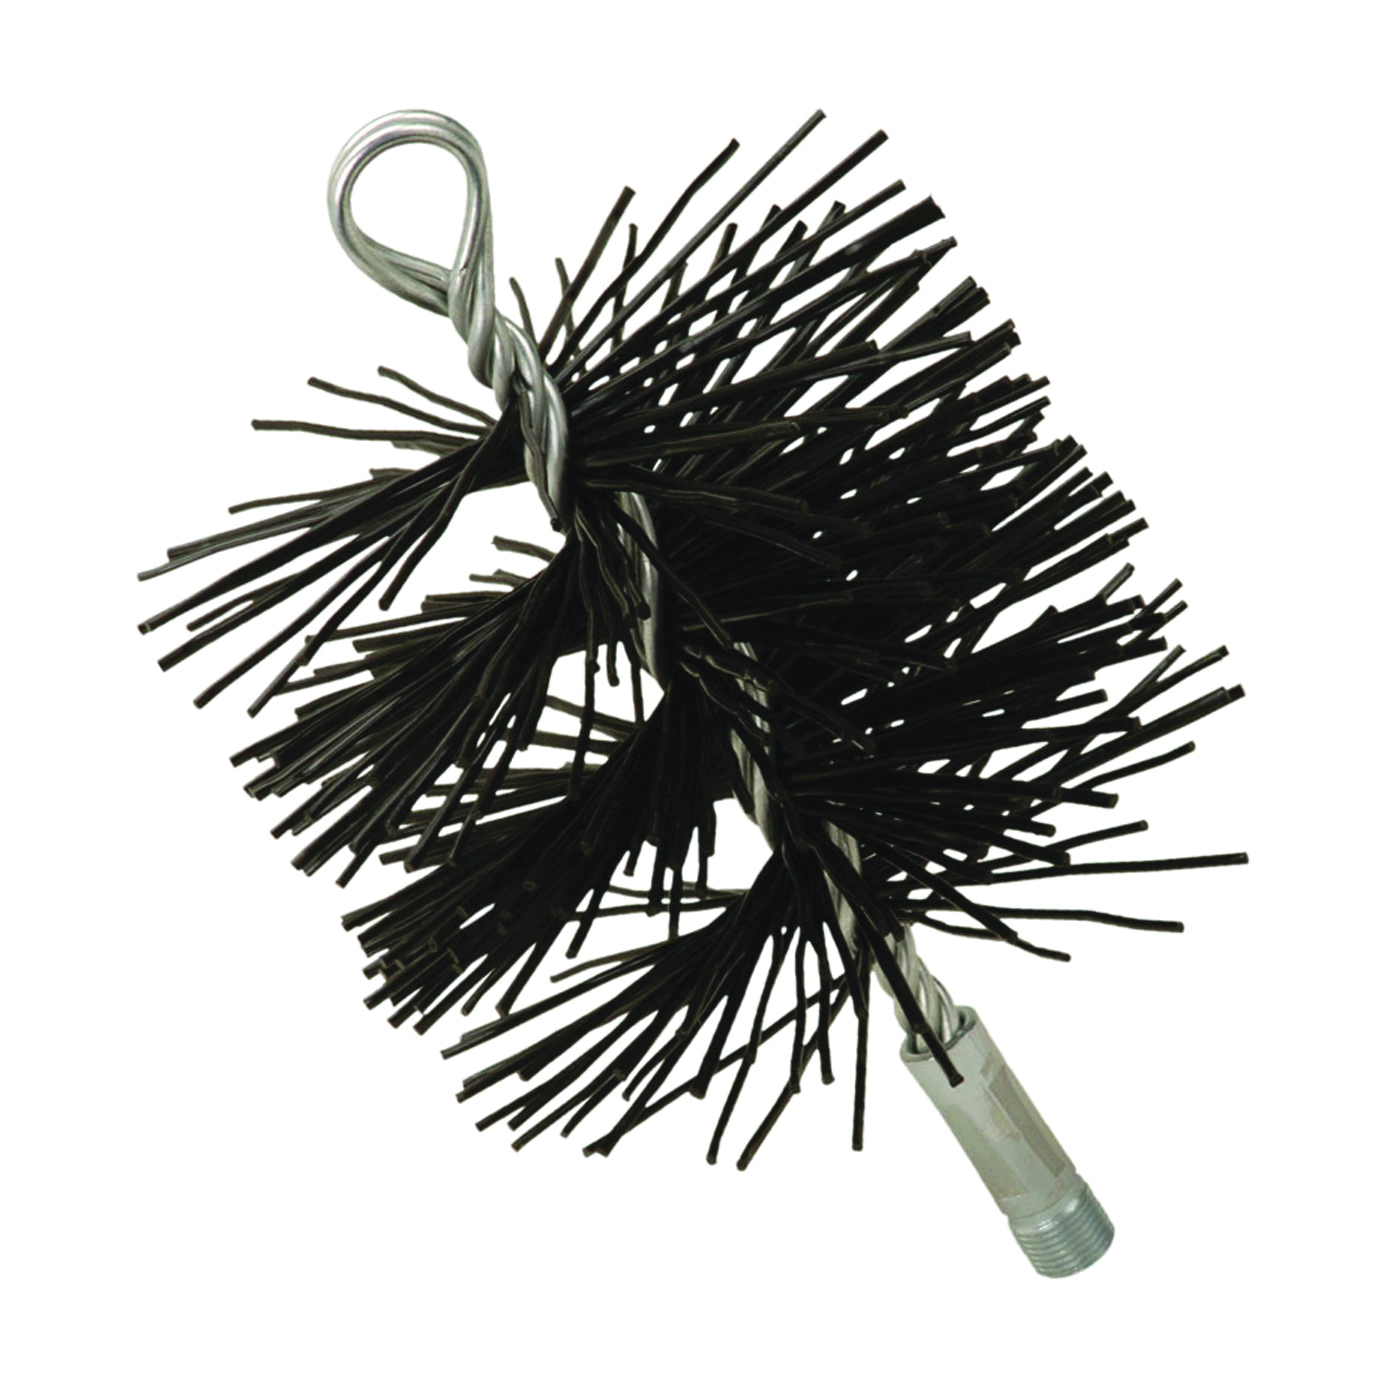 Picture of Imperial BR0075 Round Chimney Brush, 5 in Dia Brush, Polypropylene Fiber Trim